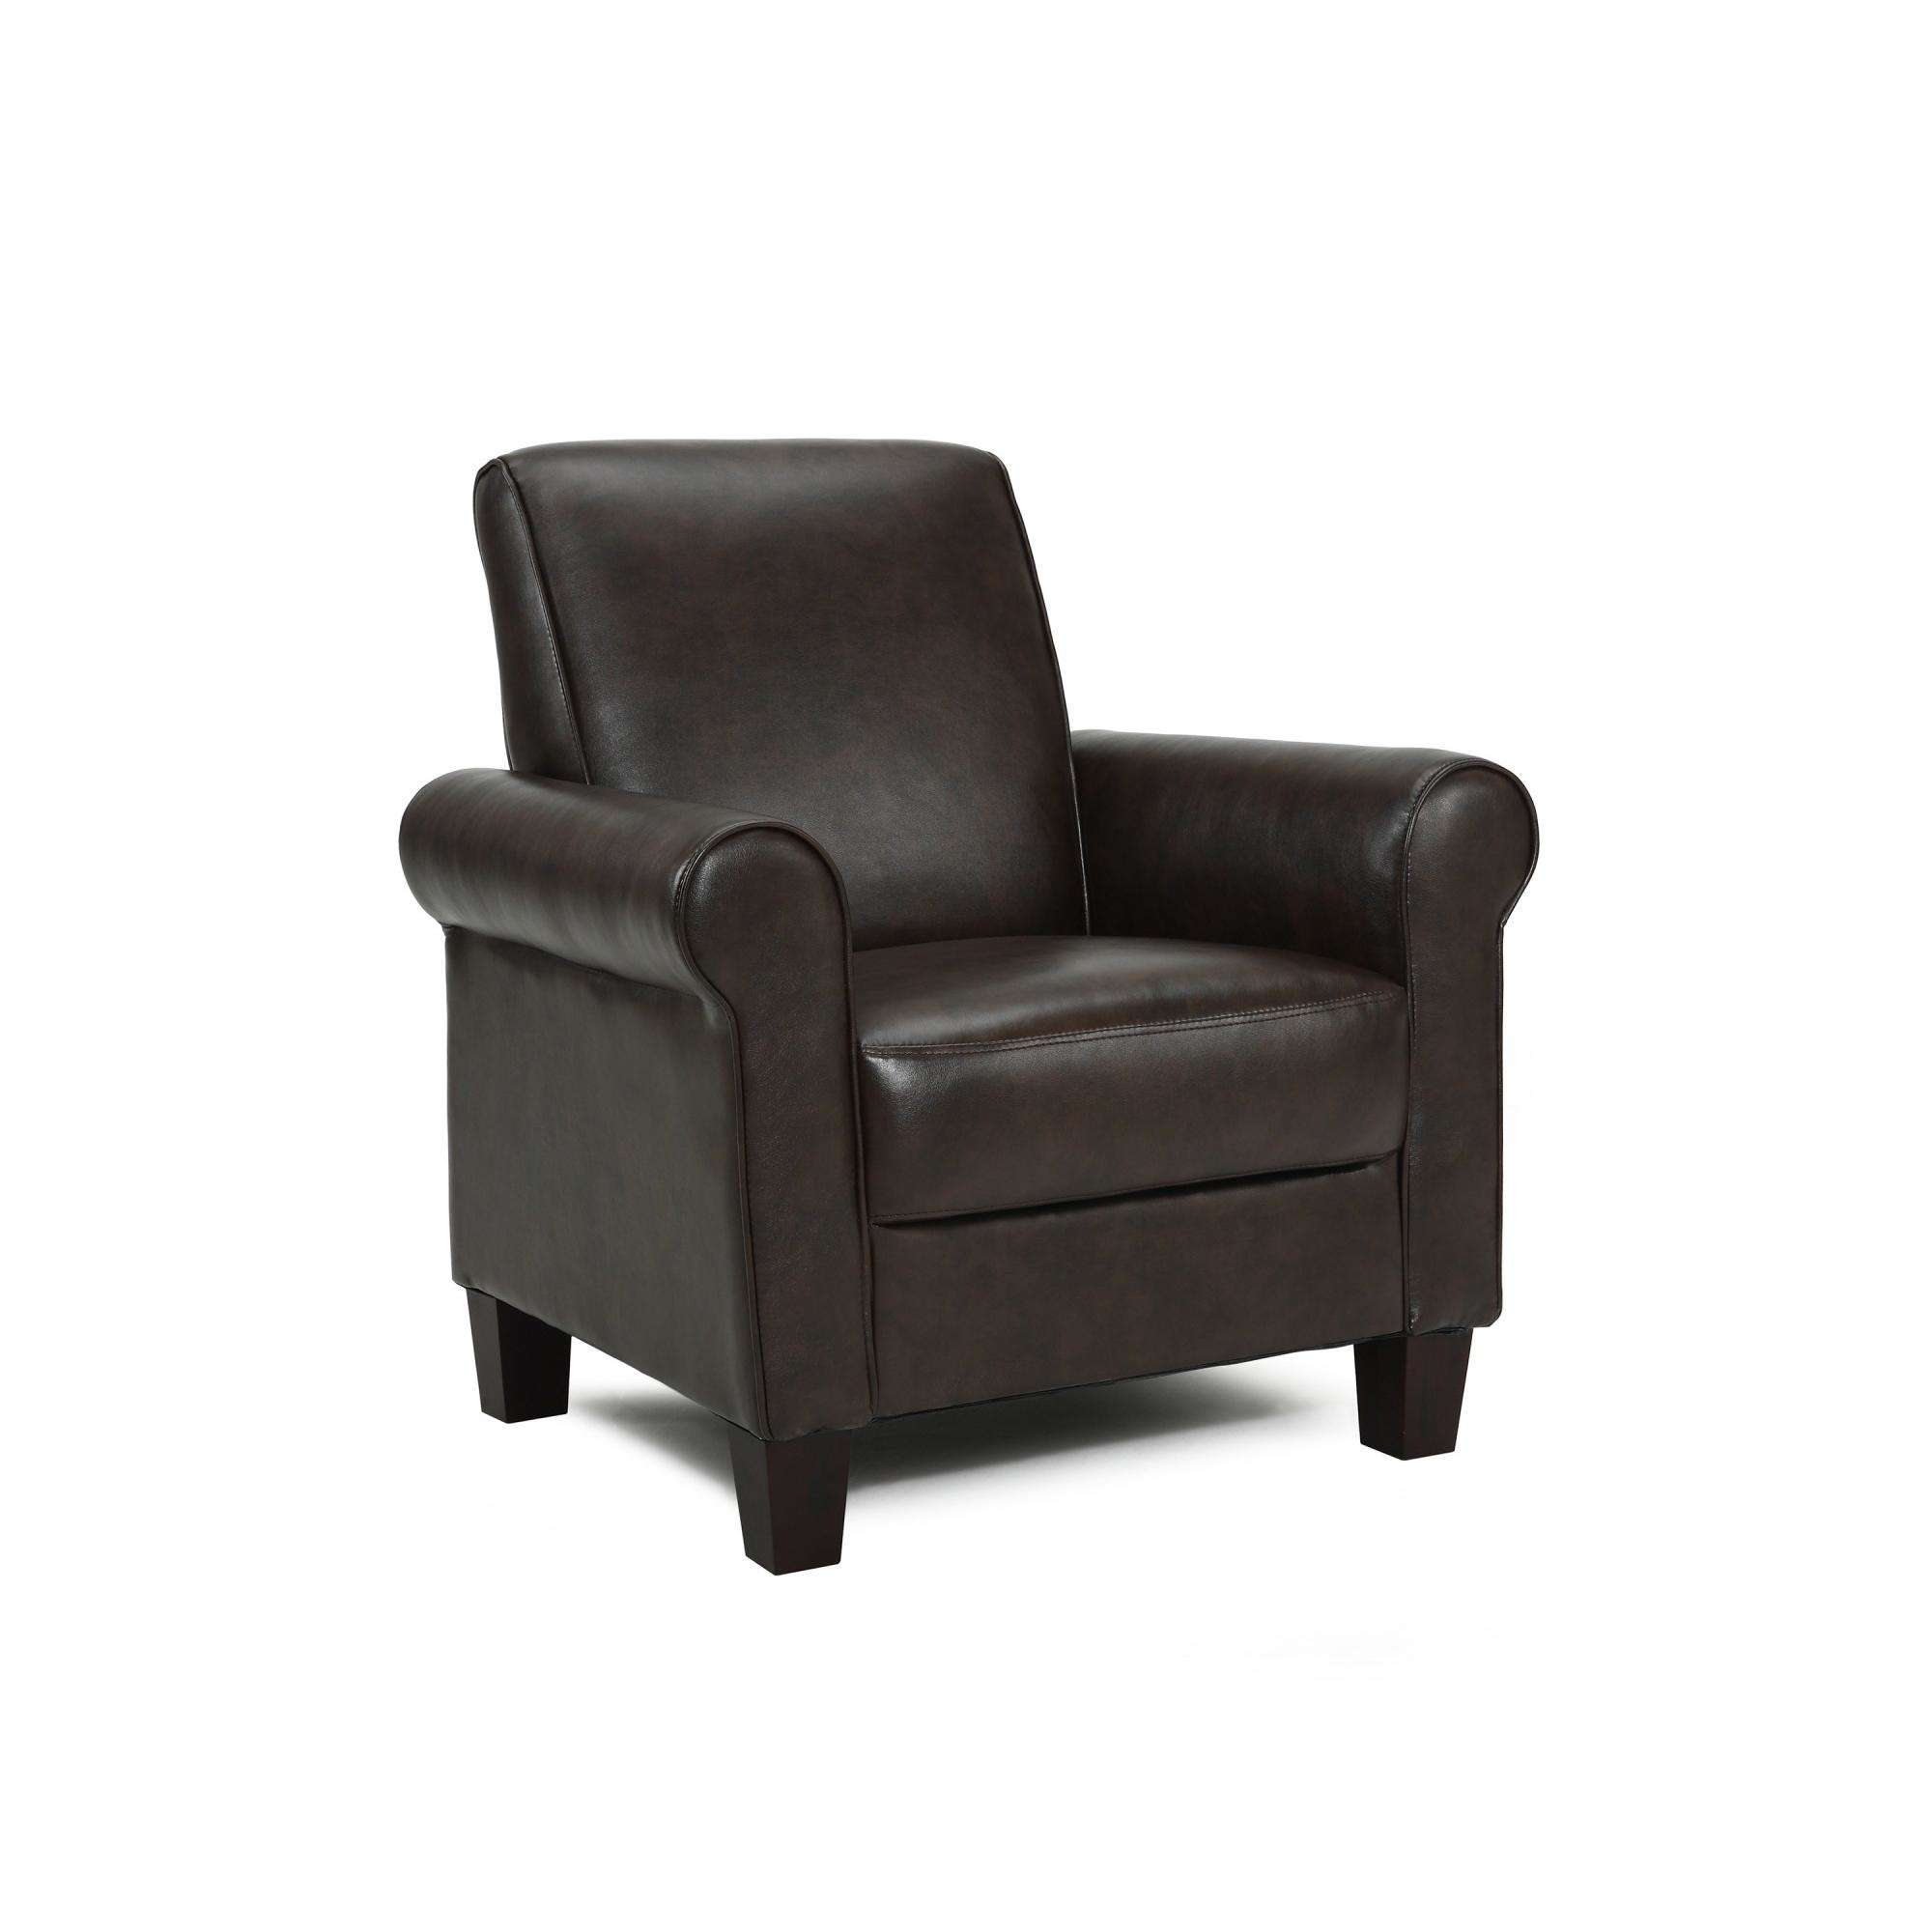 Nikella Leather Accent Chair: DHI Rollx Arm Accent Chair, Faux Leather, Multiple Colors